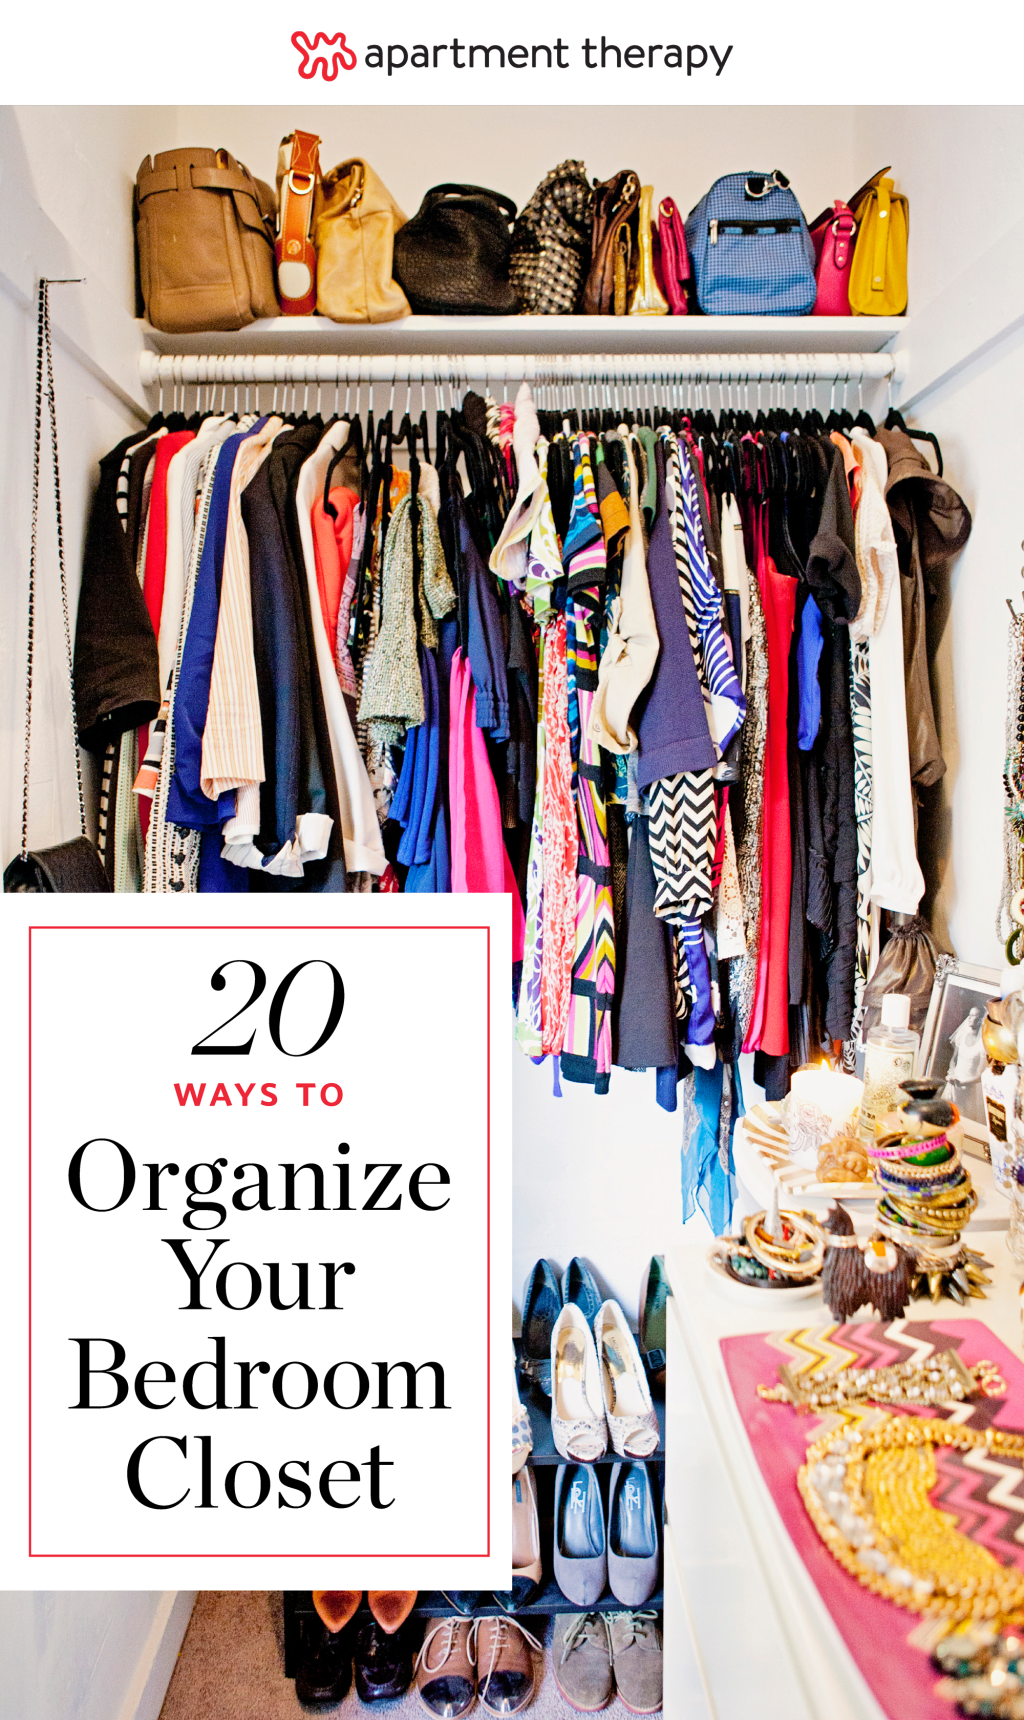 20 ideas for organizing your bedroom closet apartment 21102 | 9810a7d3effd388ec7160b29c2fbe5fe294d537c